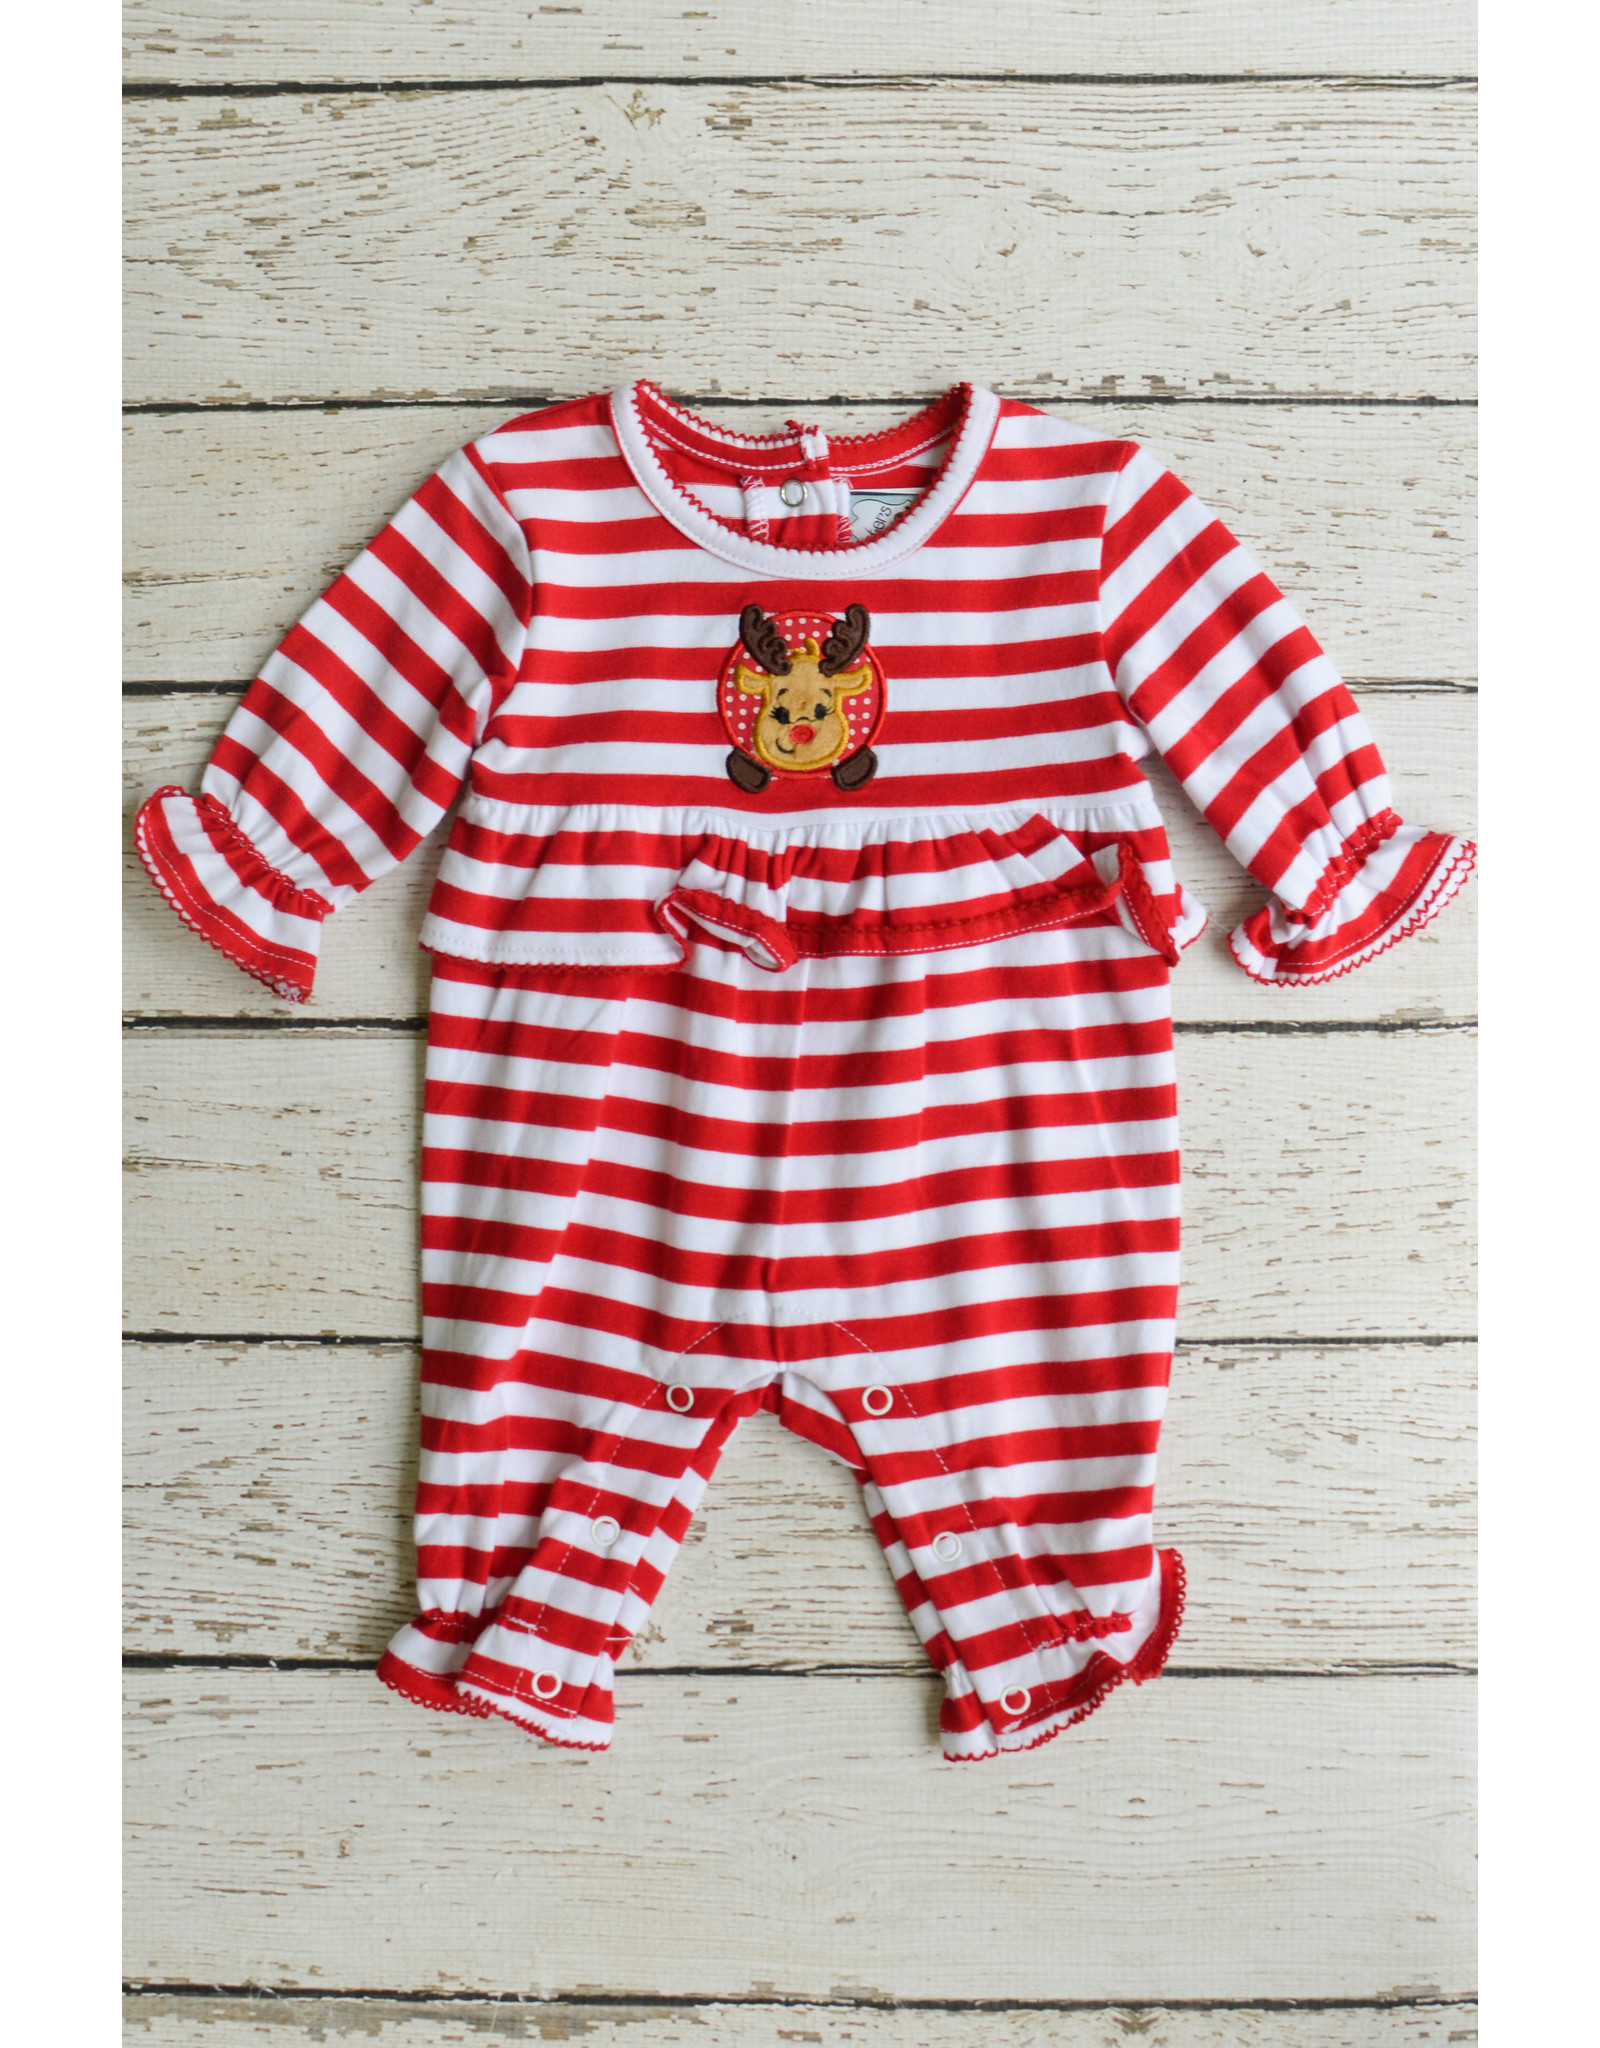 Three Sisters Reindeer Applique Girls Romper